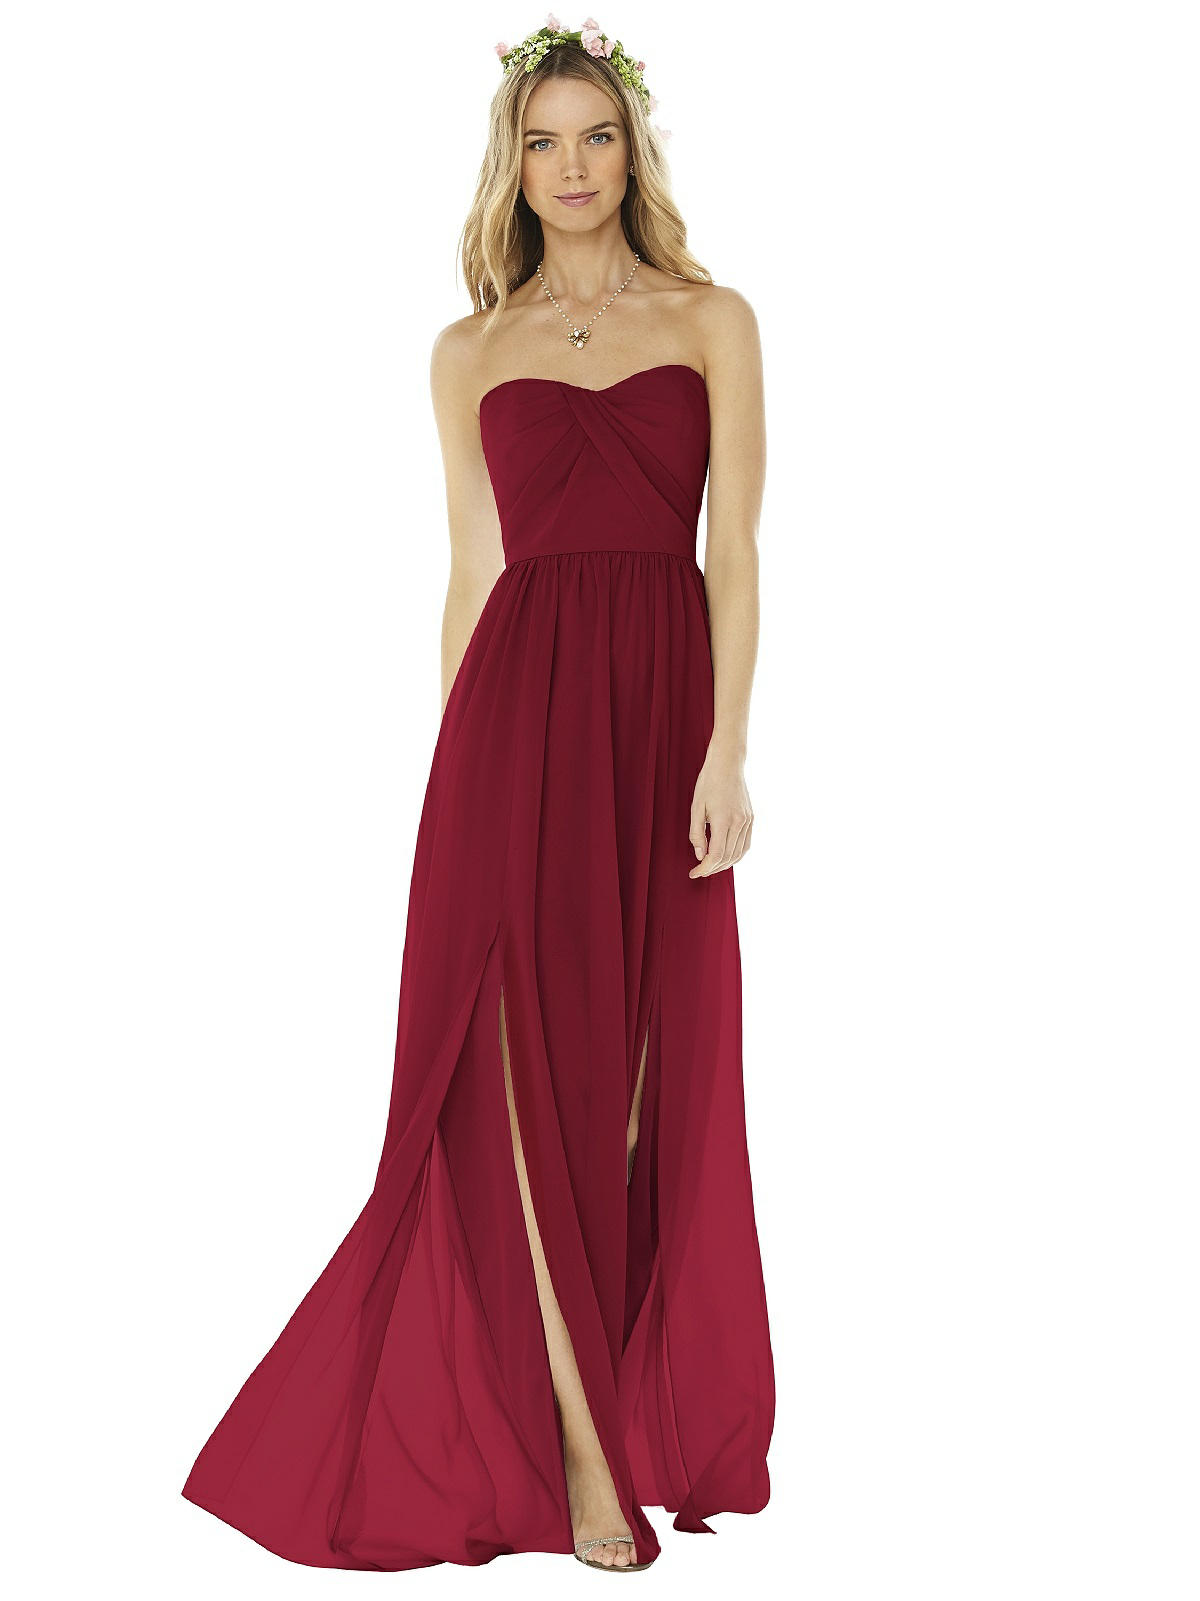 Social Sweetheart Neckline Bridesmaids Dress